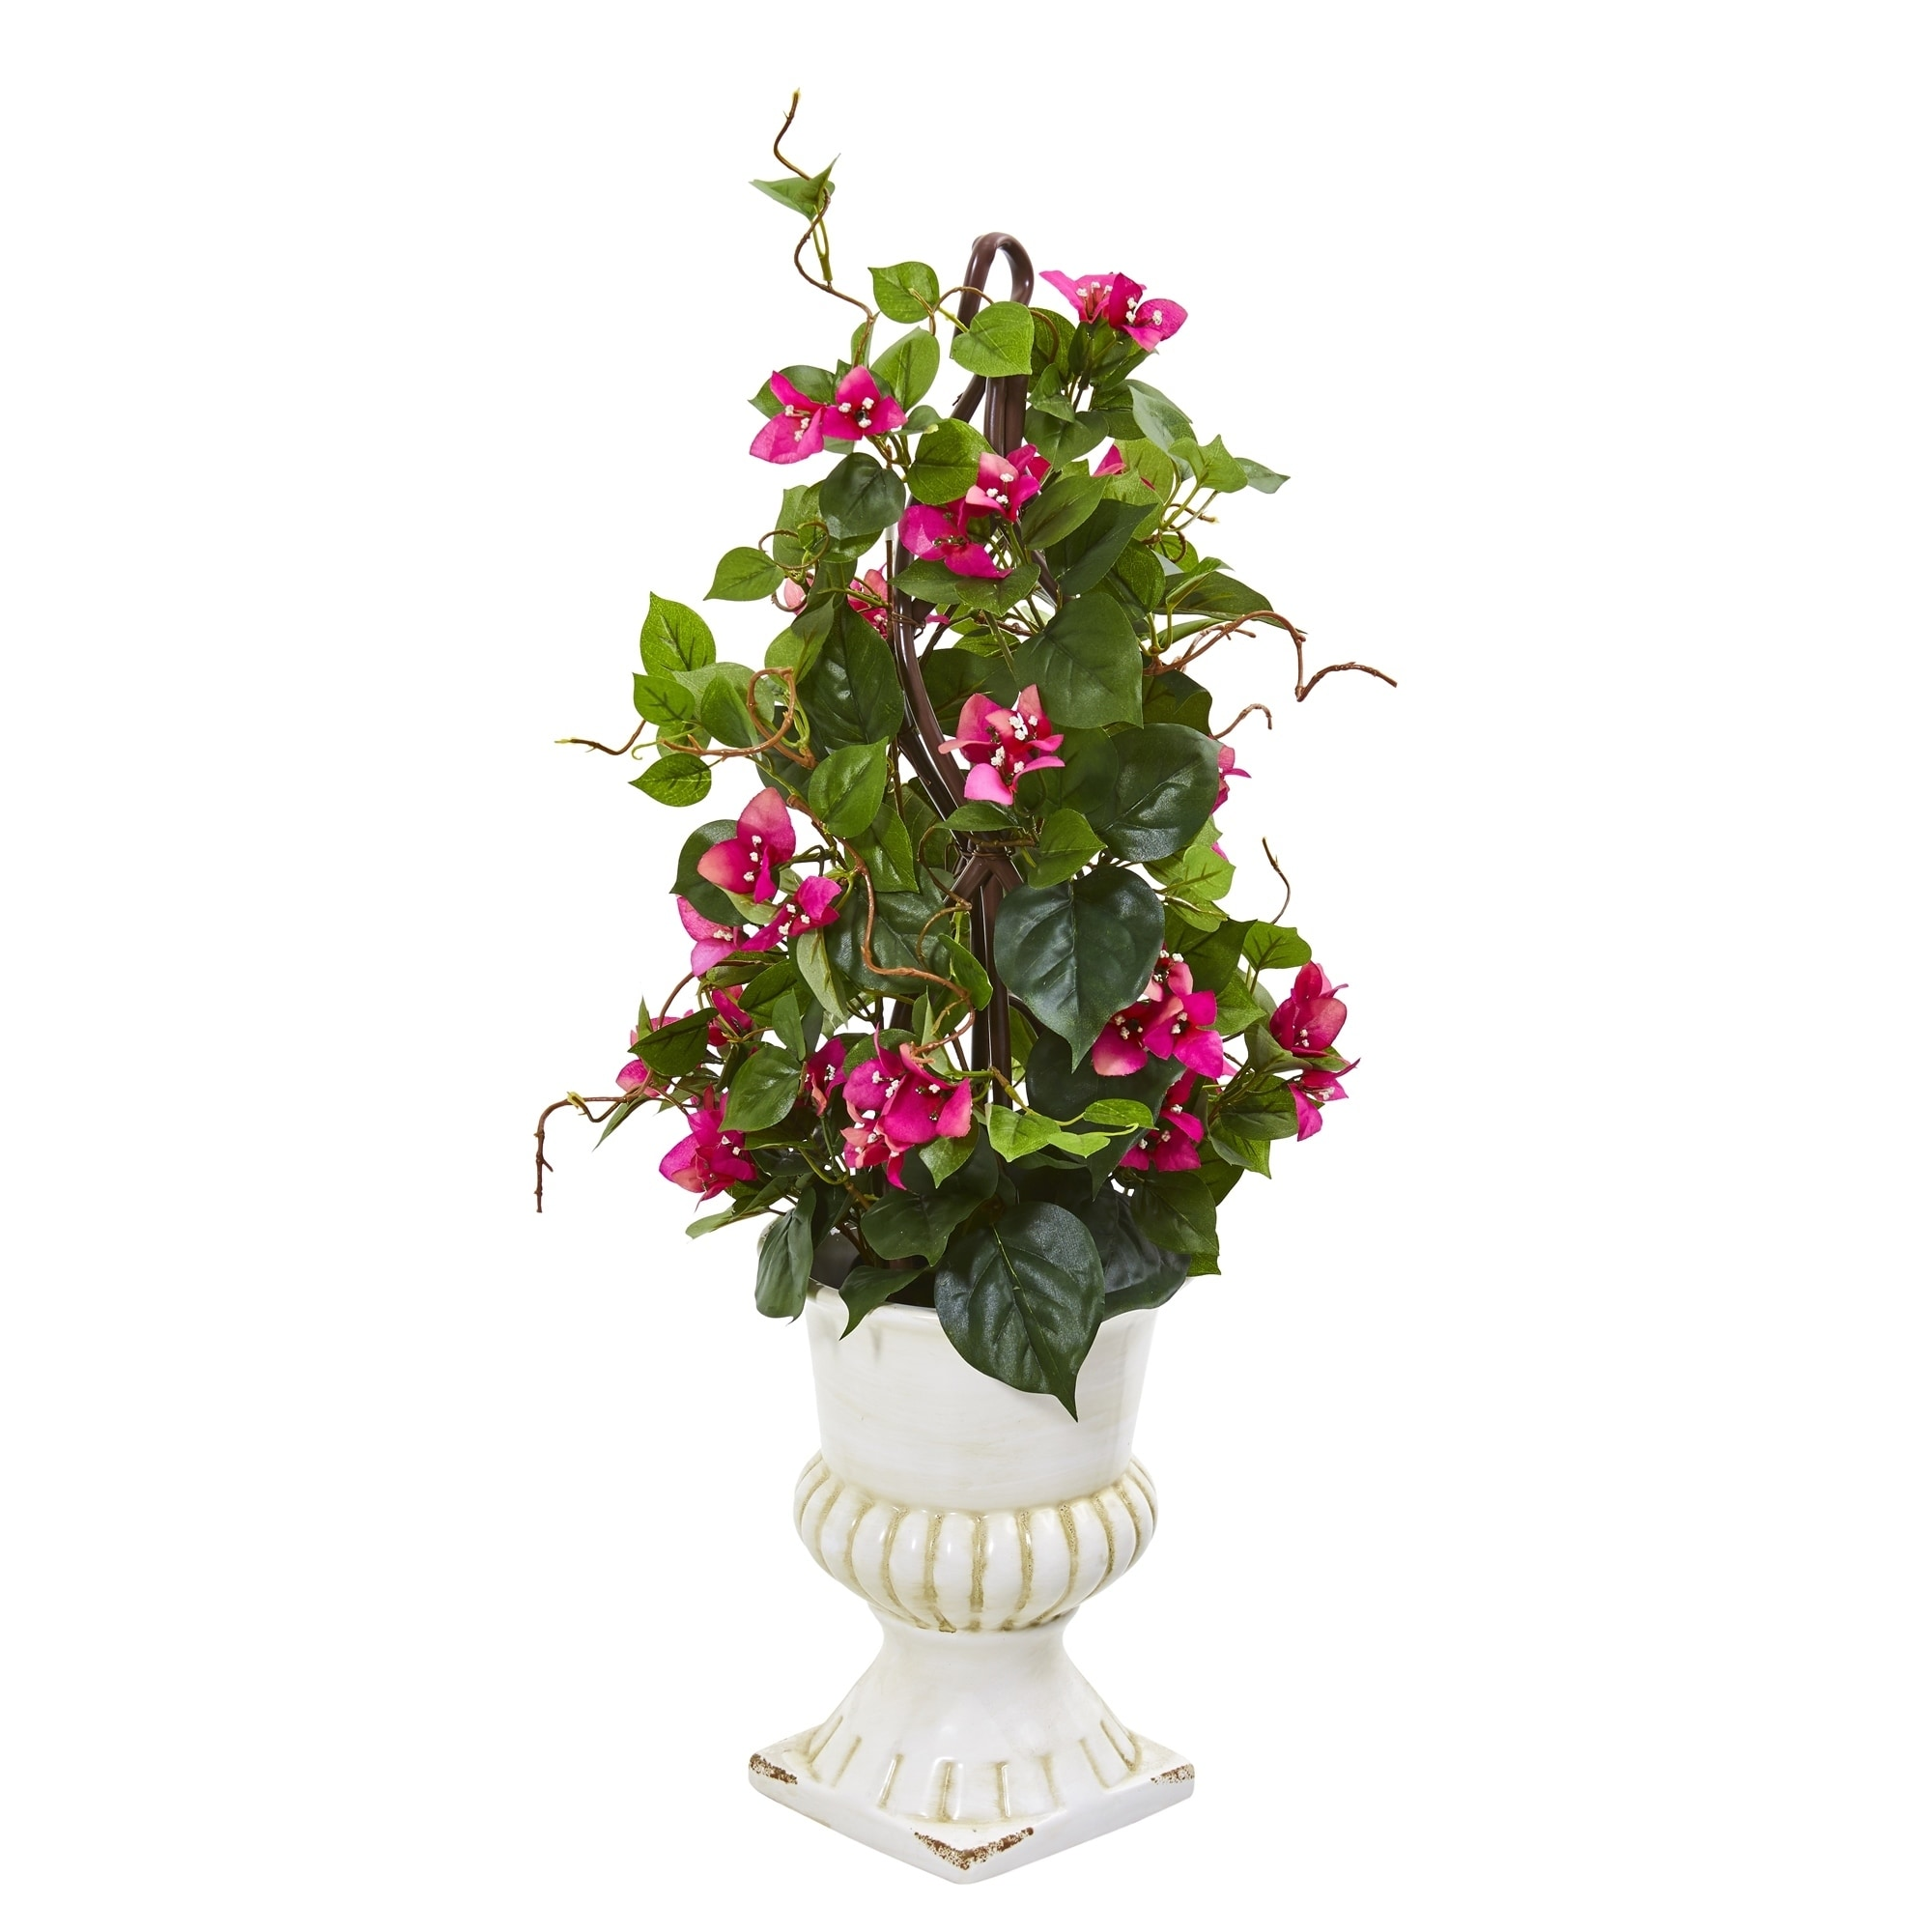 29 Bougainvillea Artificial Climbing Plant in White Urn